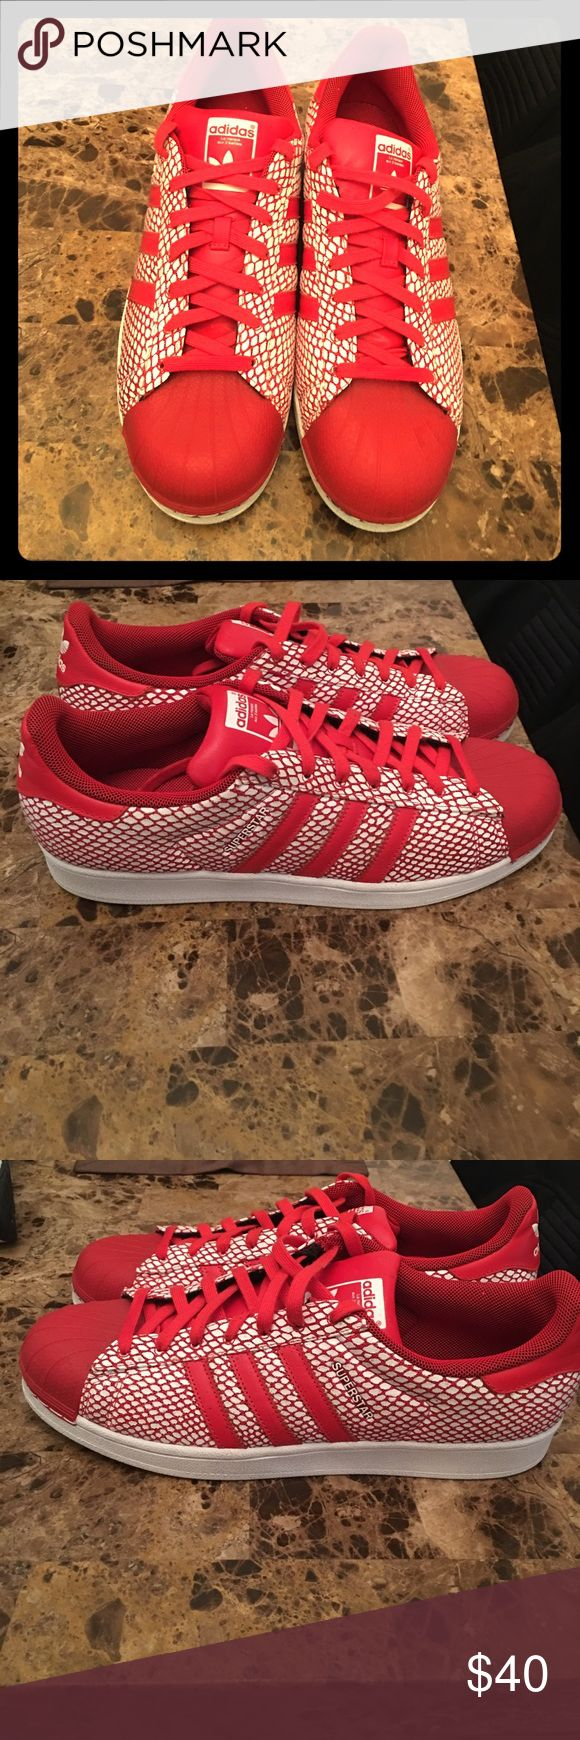 Adidas men shoes Red & white size 13 superstar adidas. Worn once. Adidas Shoes Sneakers